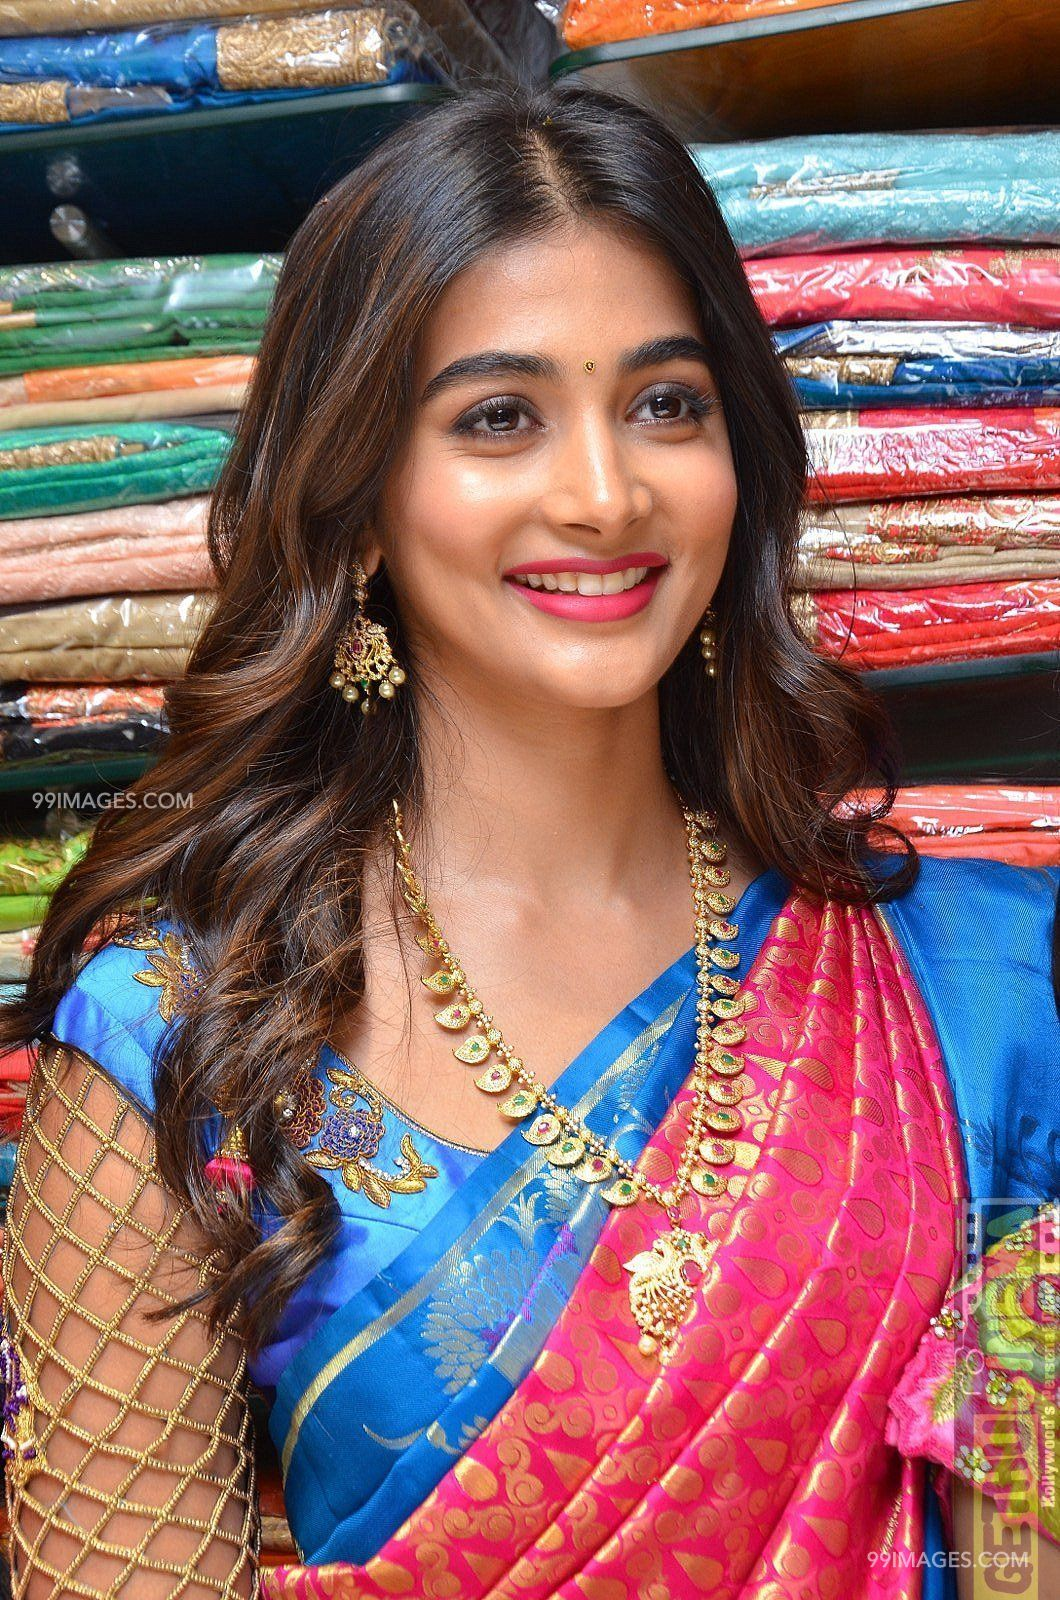 Pooja Hegde Hot Beautiful HD Photos / Wallpapers (1080p) (7407) - Pooja Hegde